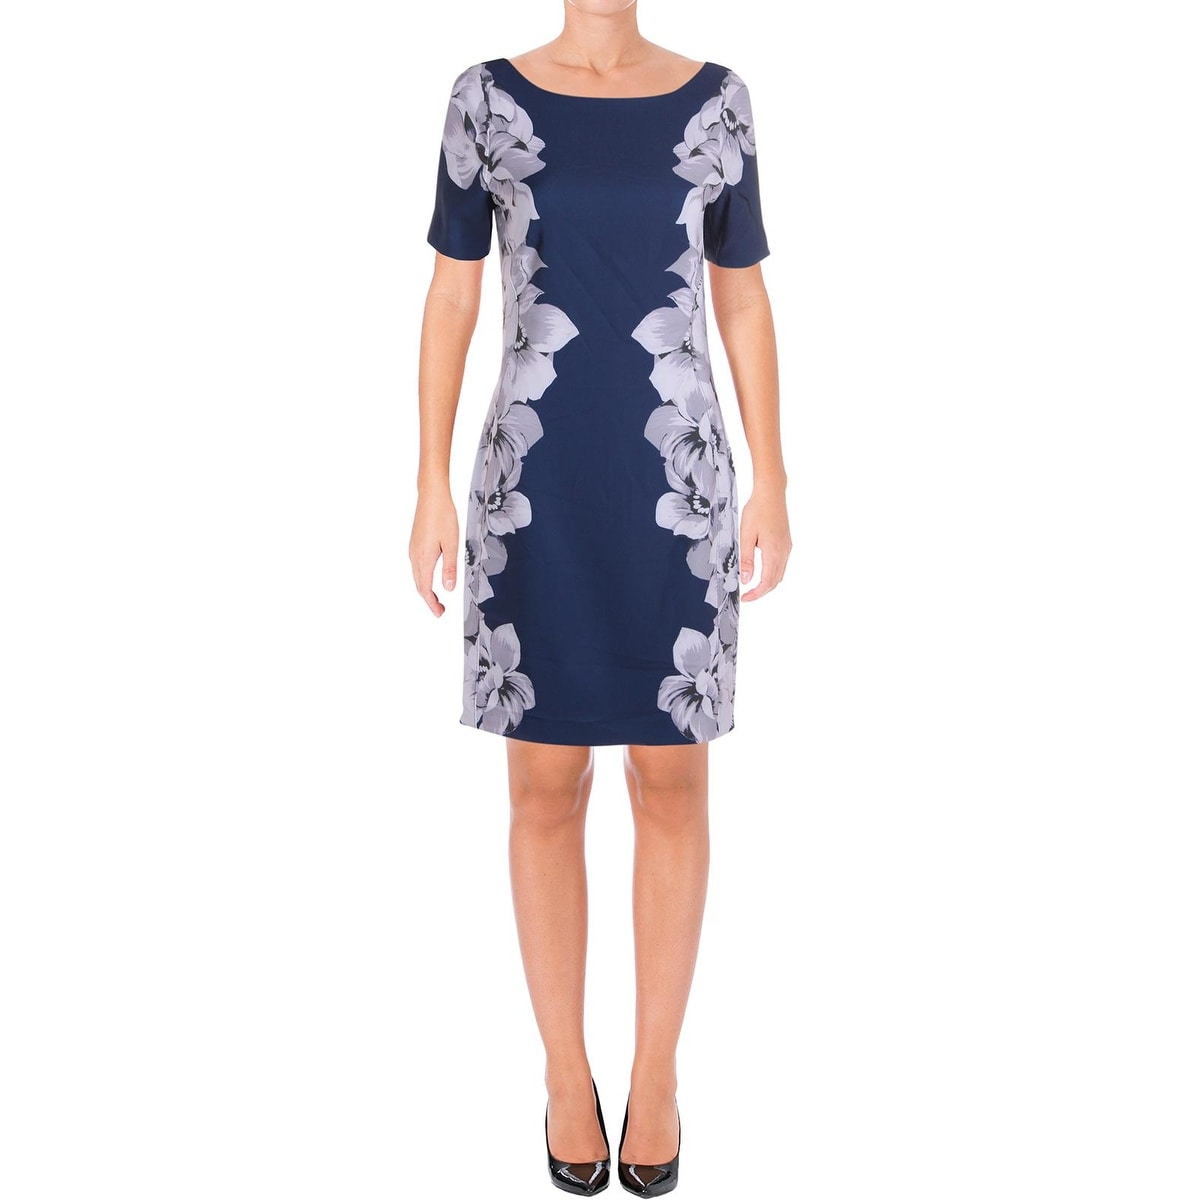 8cc648bb243 Special Occasion Dresses At Dillards